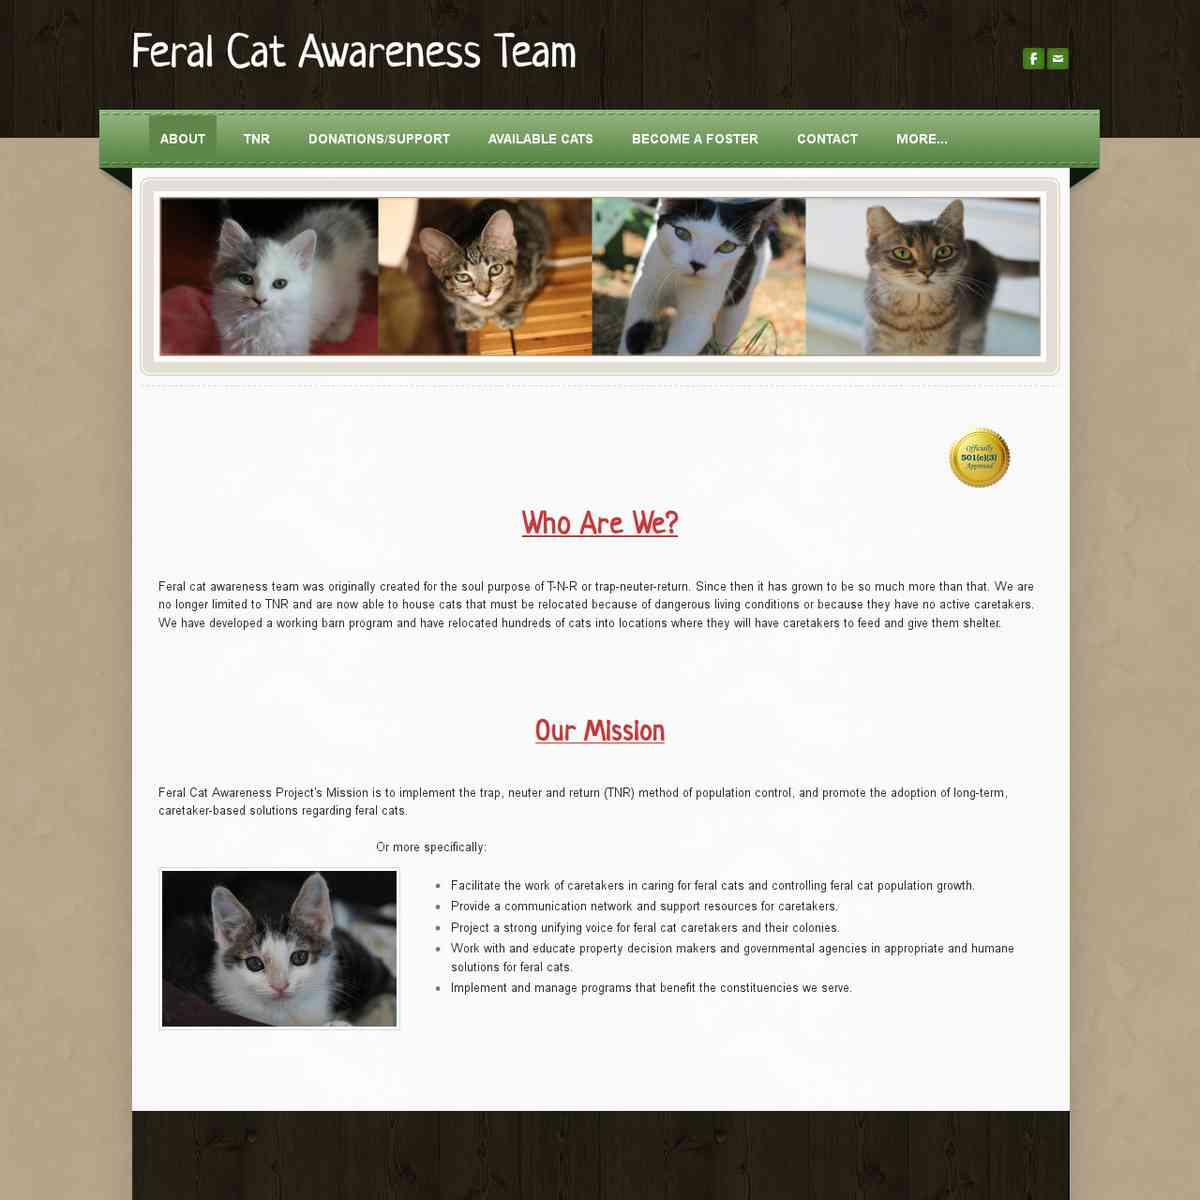 Feral Cat Awareness Team